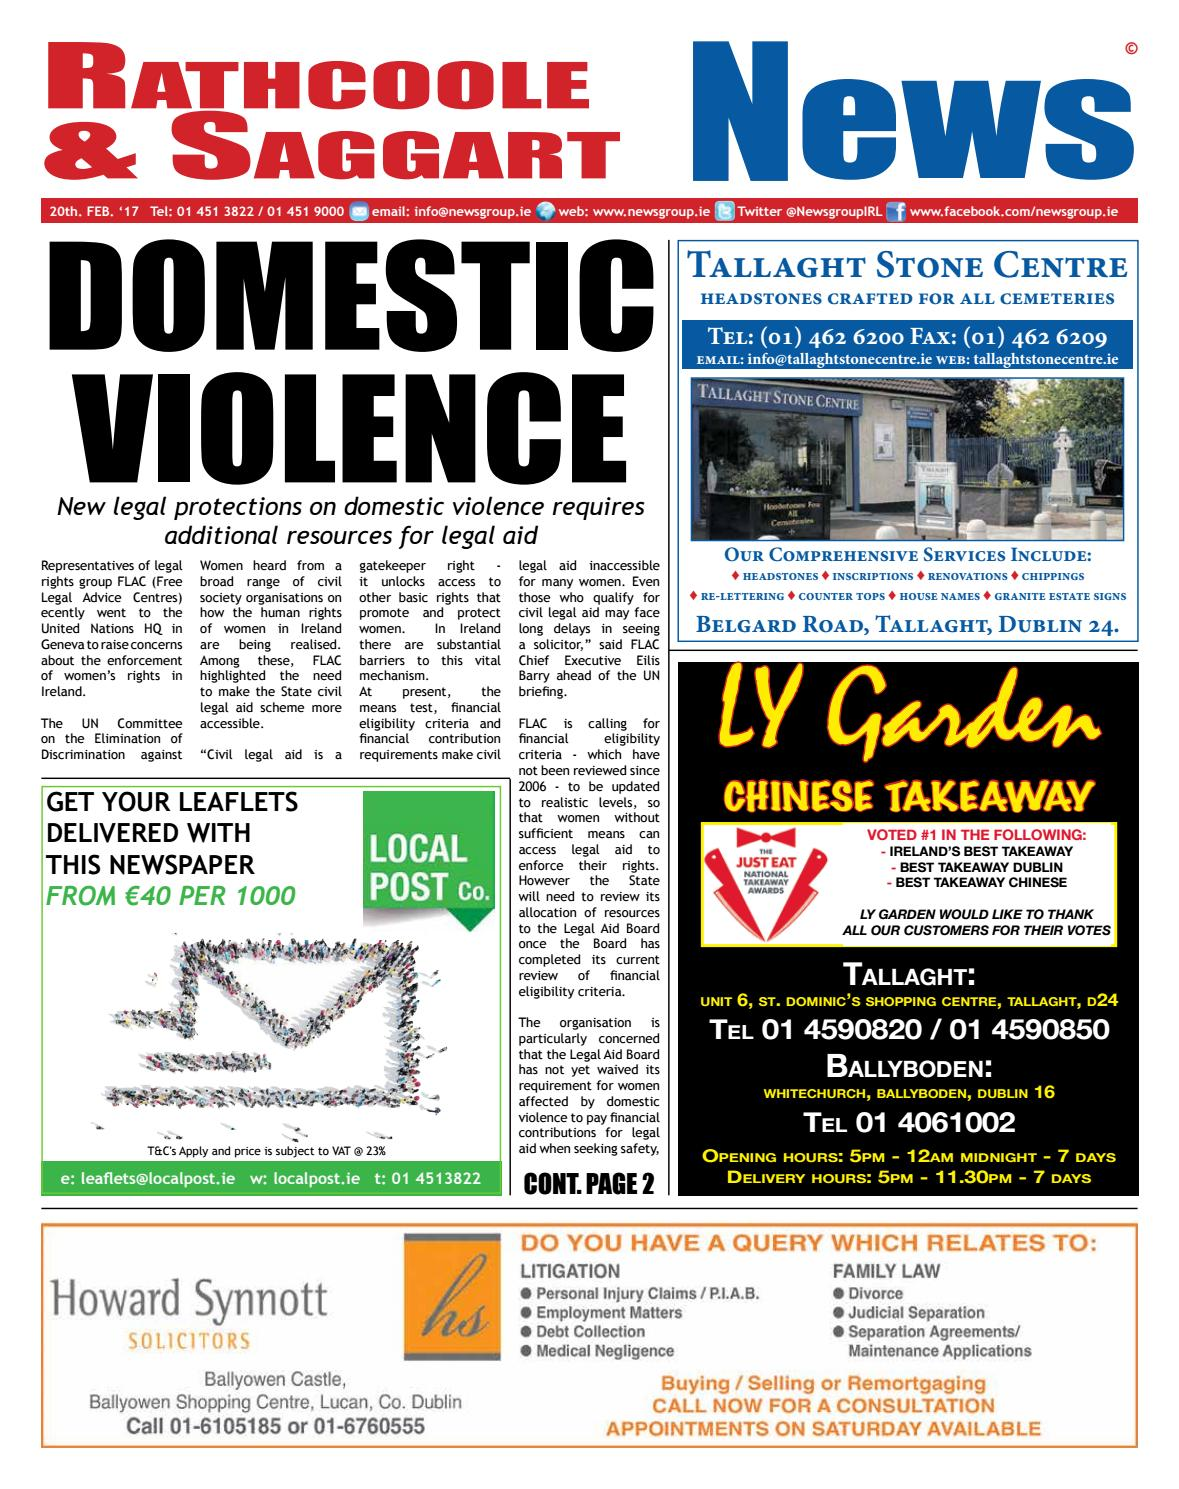 Rathcoole saggart news by newsgroup issuu solutioingenieria Images